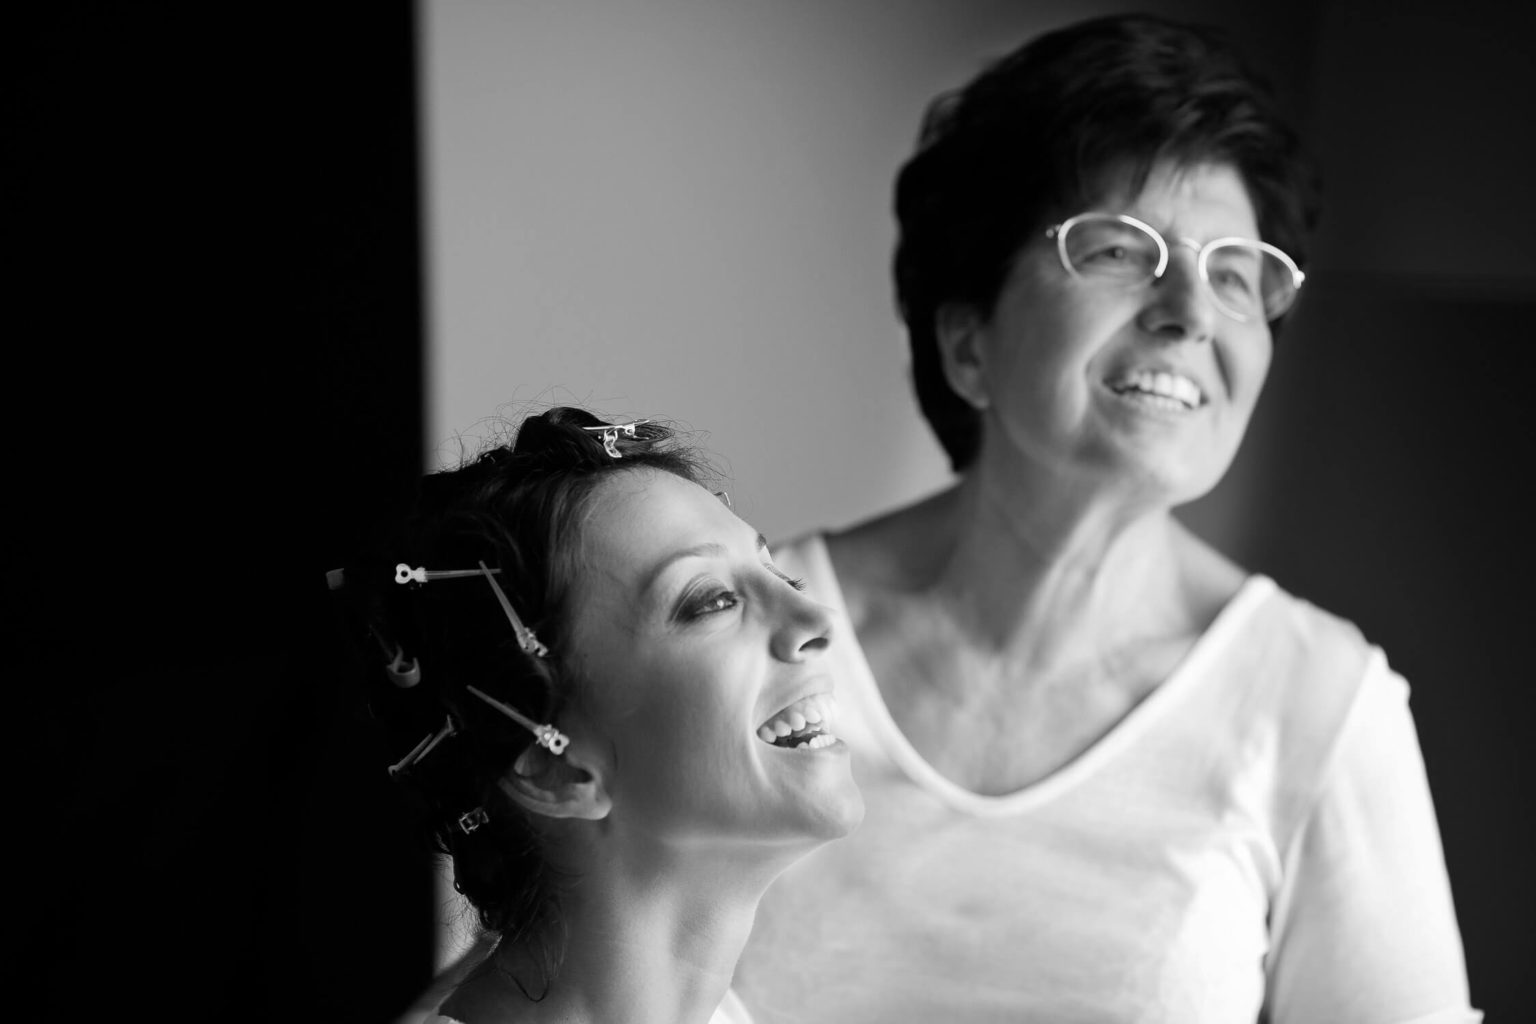 Bride and mother laugh, Nino Lombardo's black and white photography for the 1930s wedding